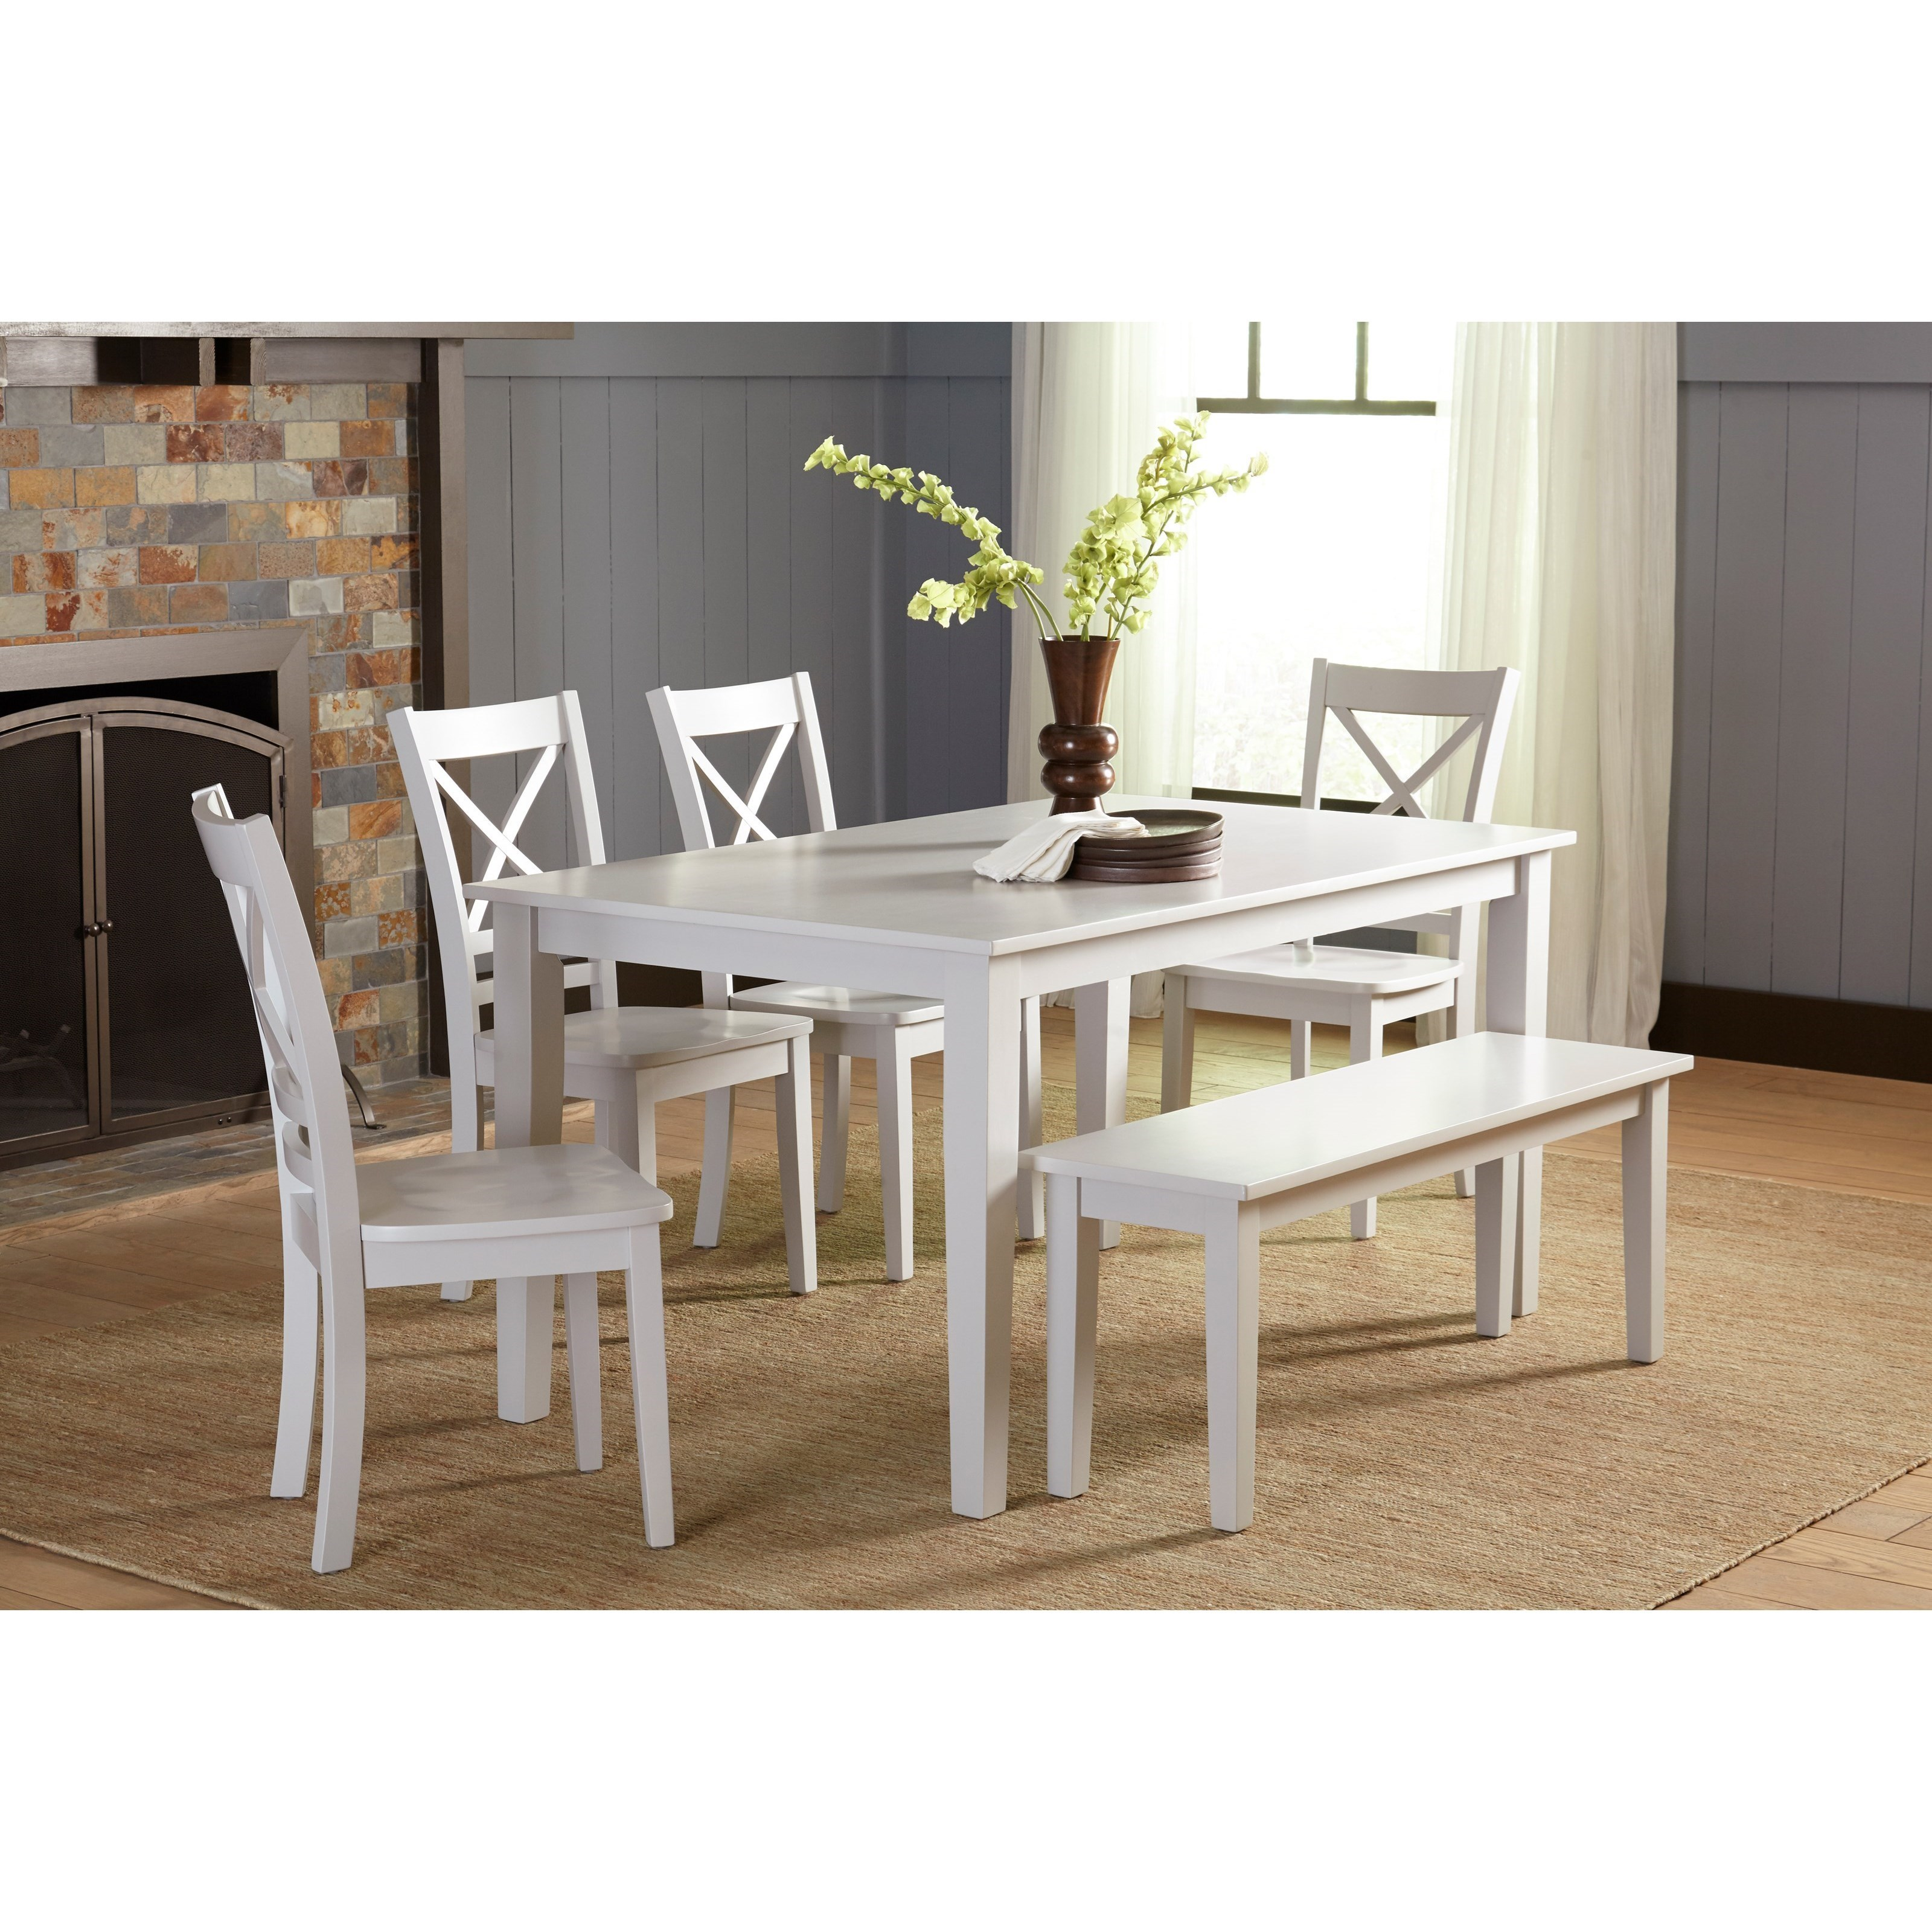 Simplicity Dining Table And Chair/Bench Set By Jofran